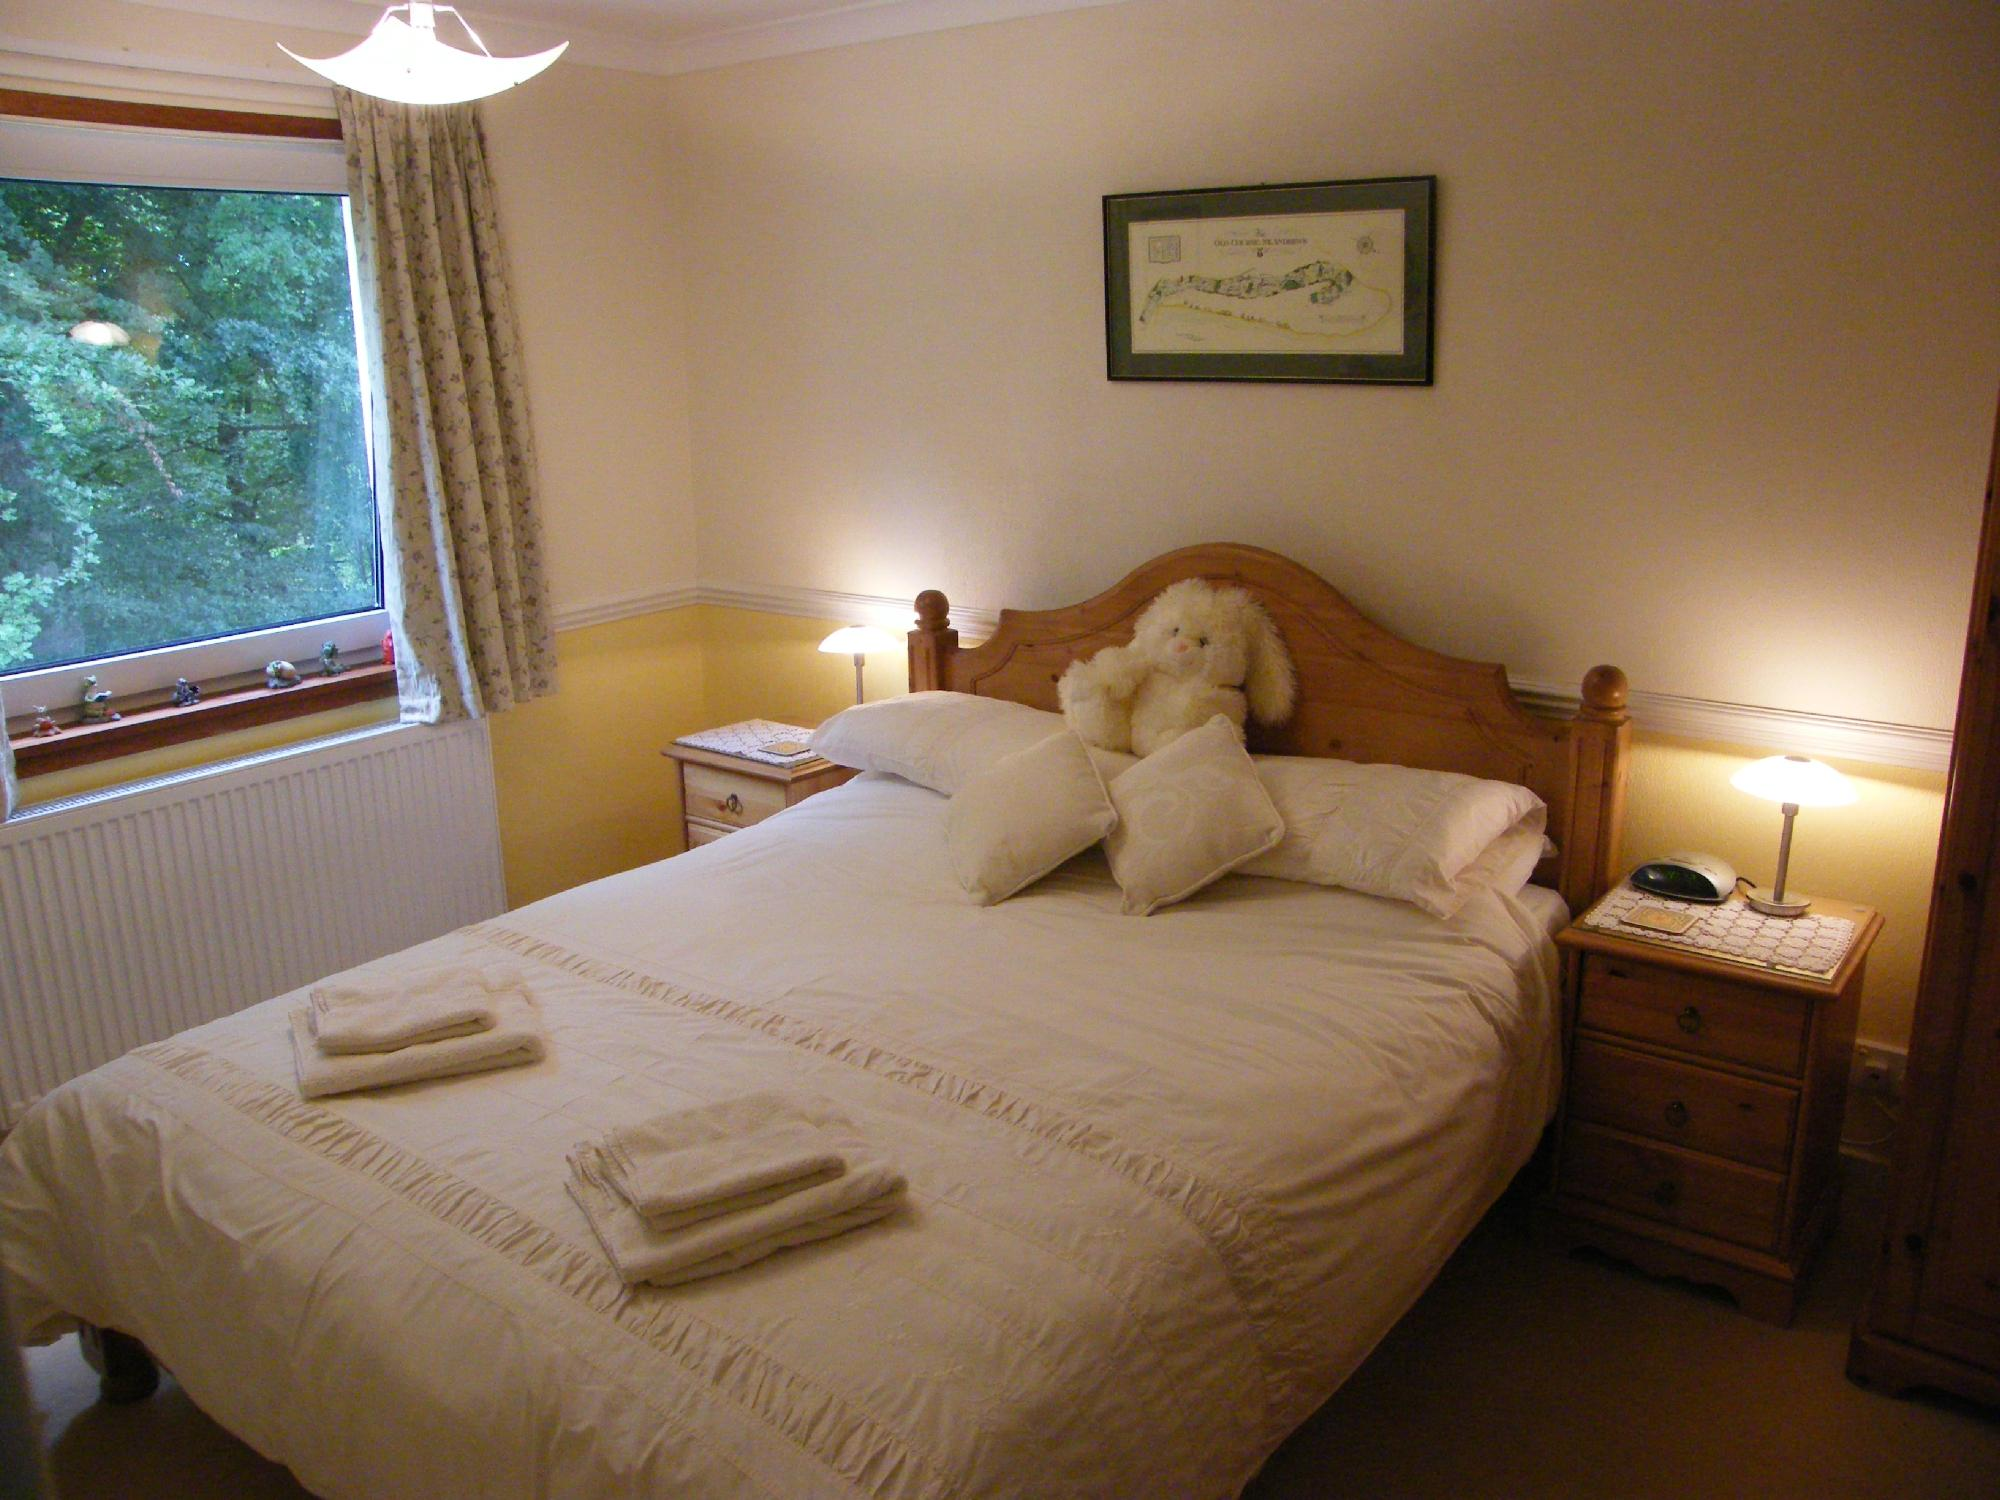 The Dell Bed & Breakfast